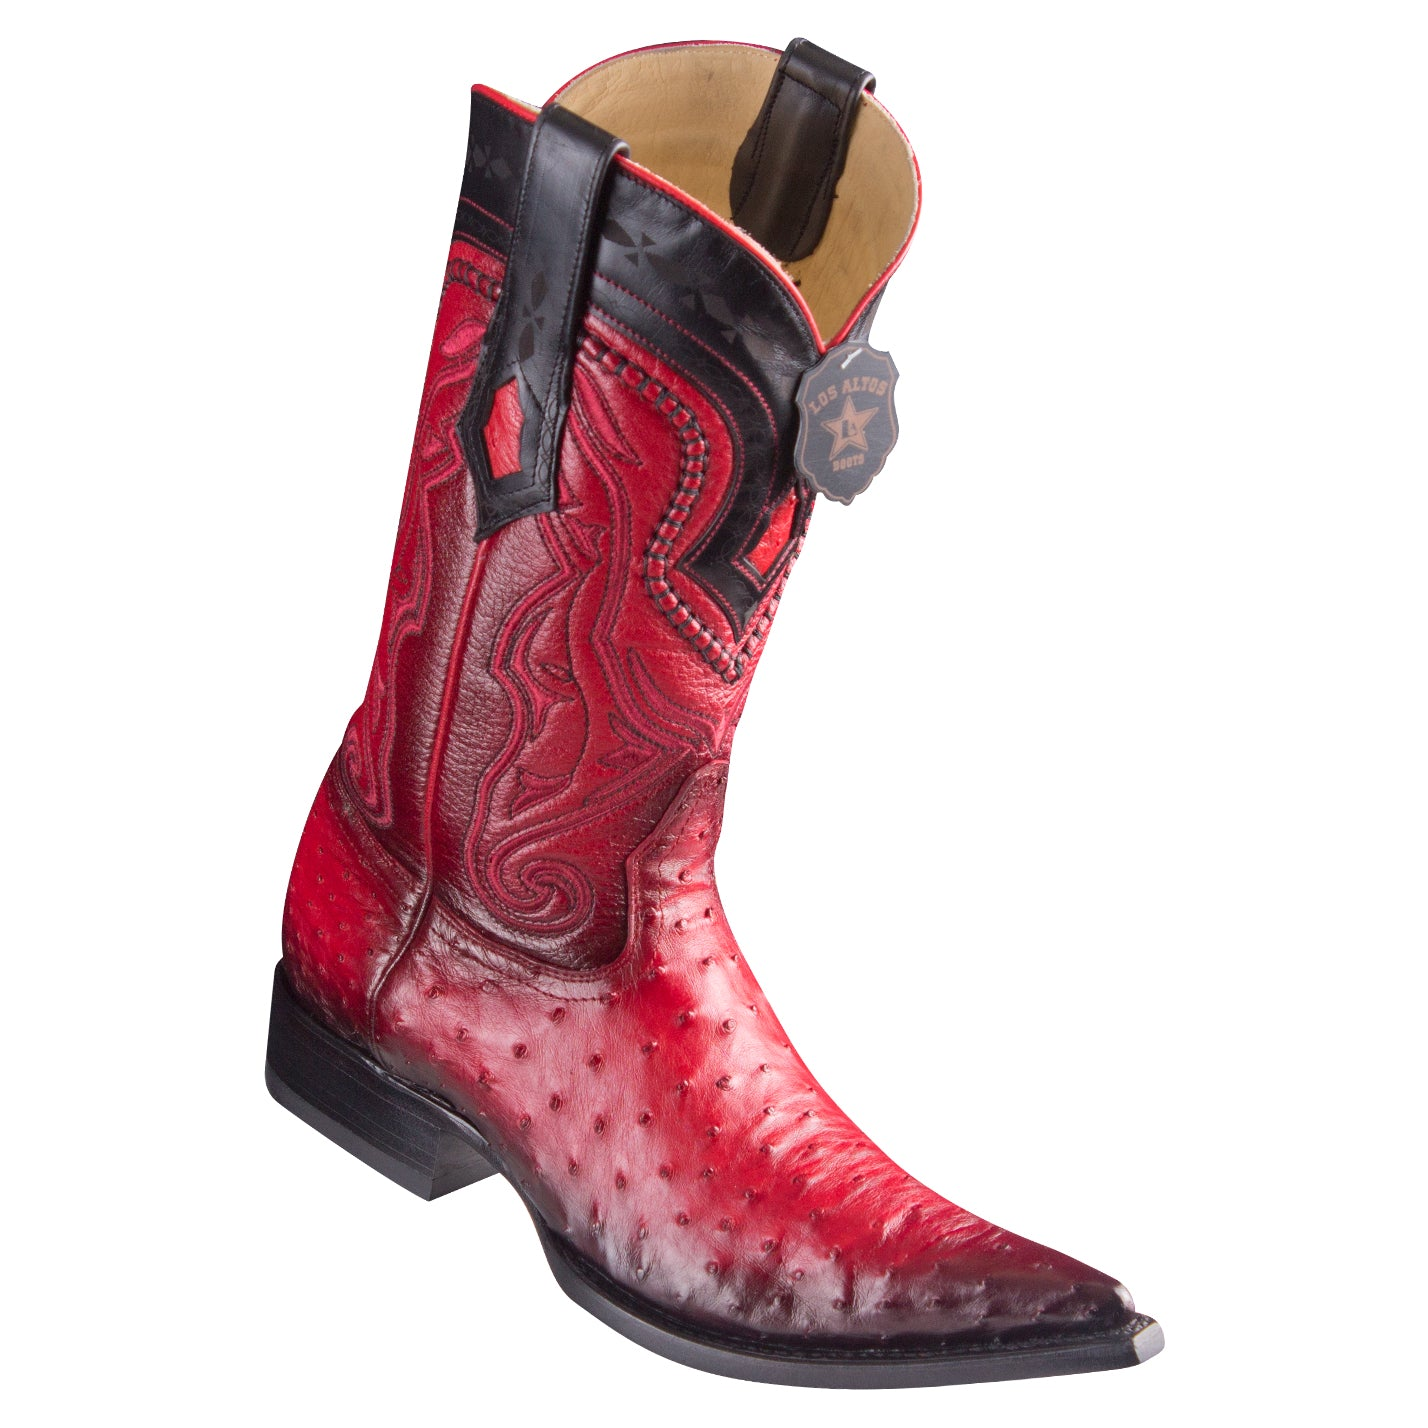 Los Altos Ostrich Faded Red Pointed Toe Cowboy Boots